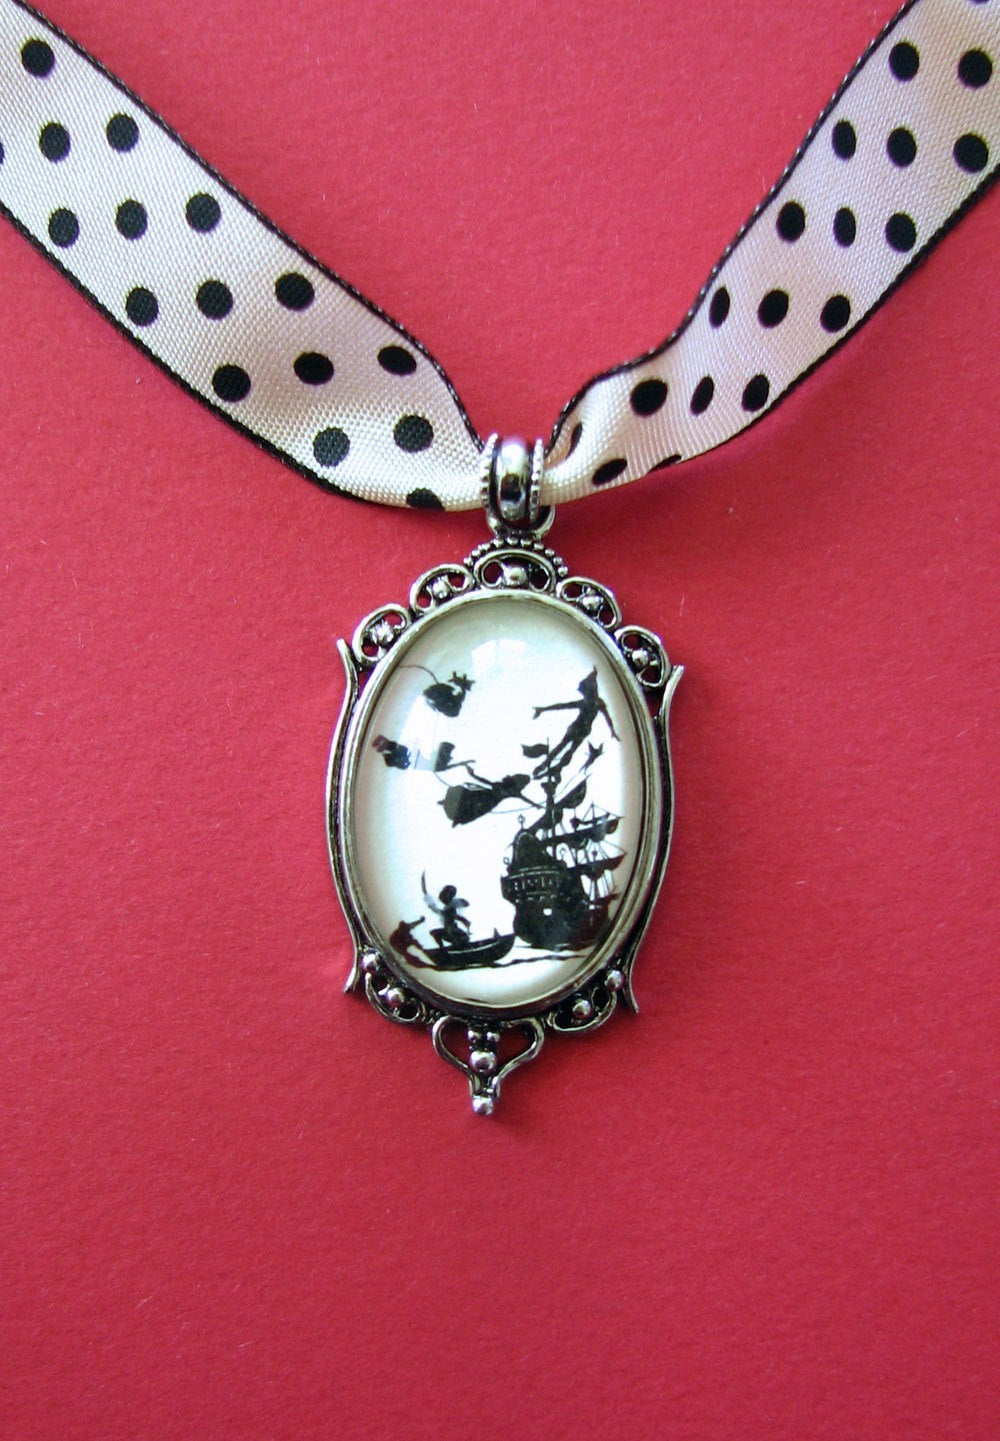 PETER PAN Choker Necklace, pendant on ribbon - Silhouette Jewelry